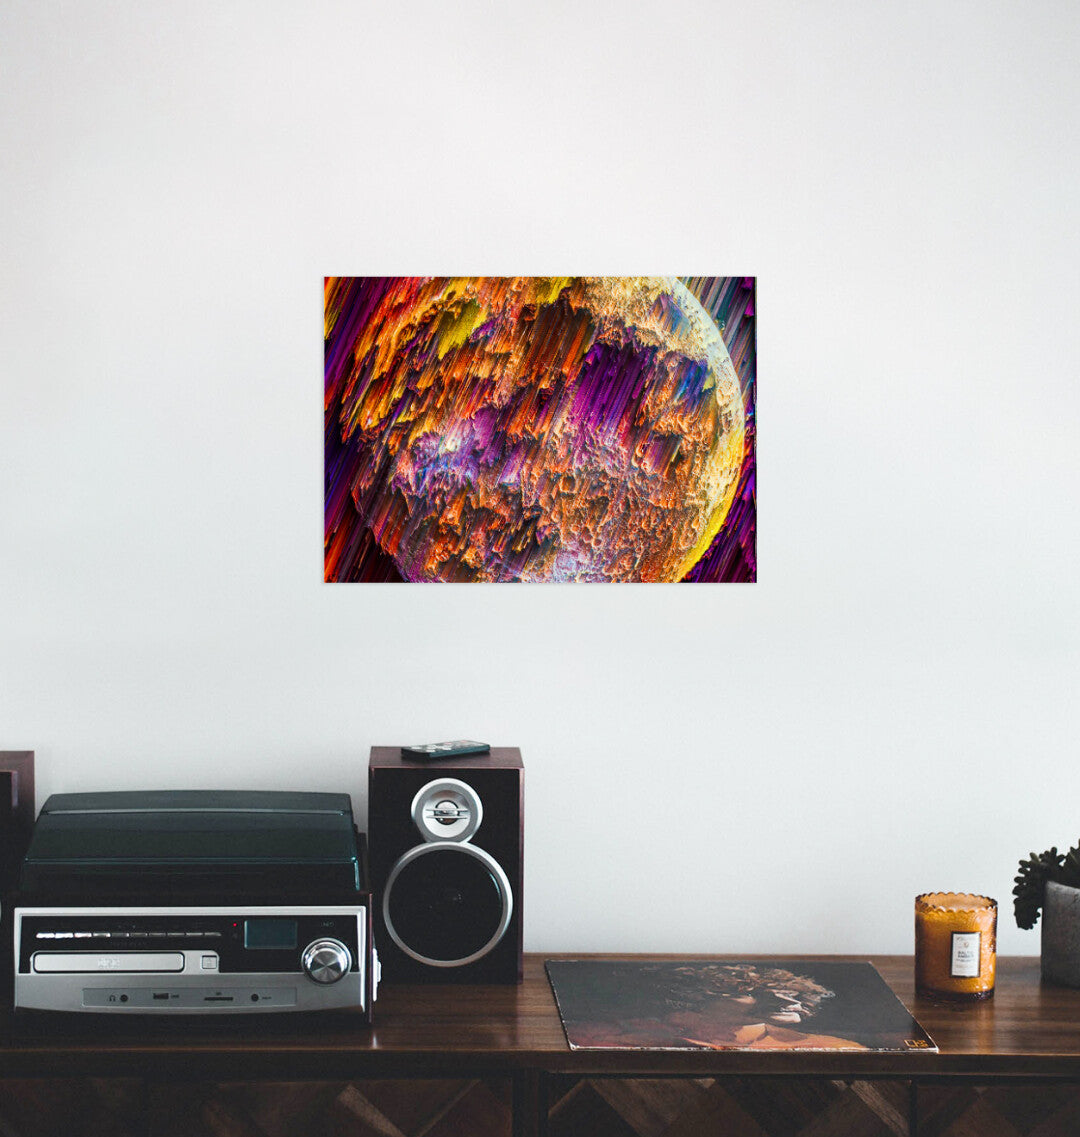 How Independent Artist Wall art looks in your living room